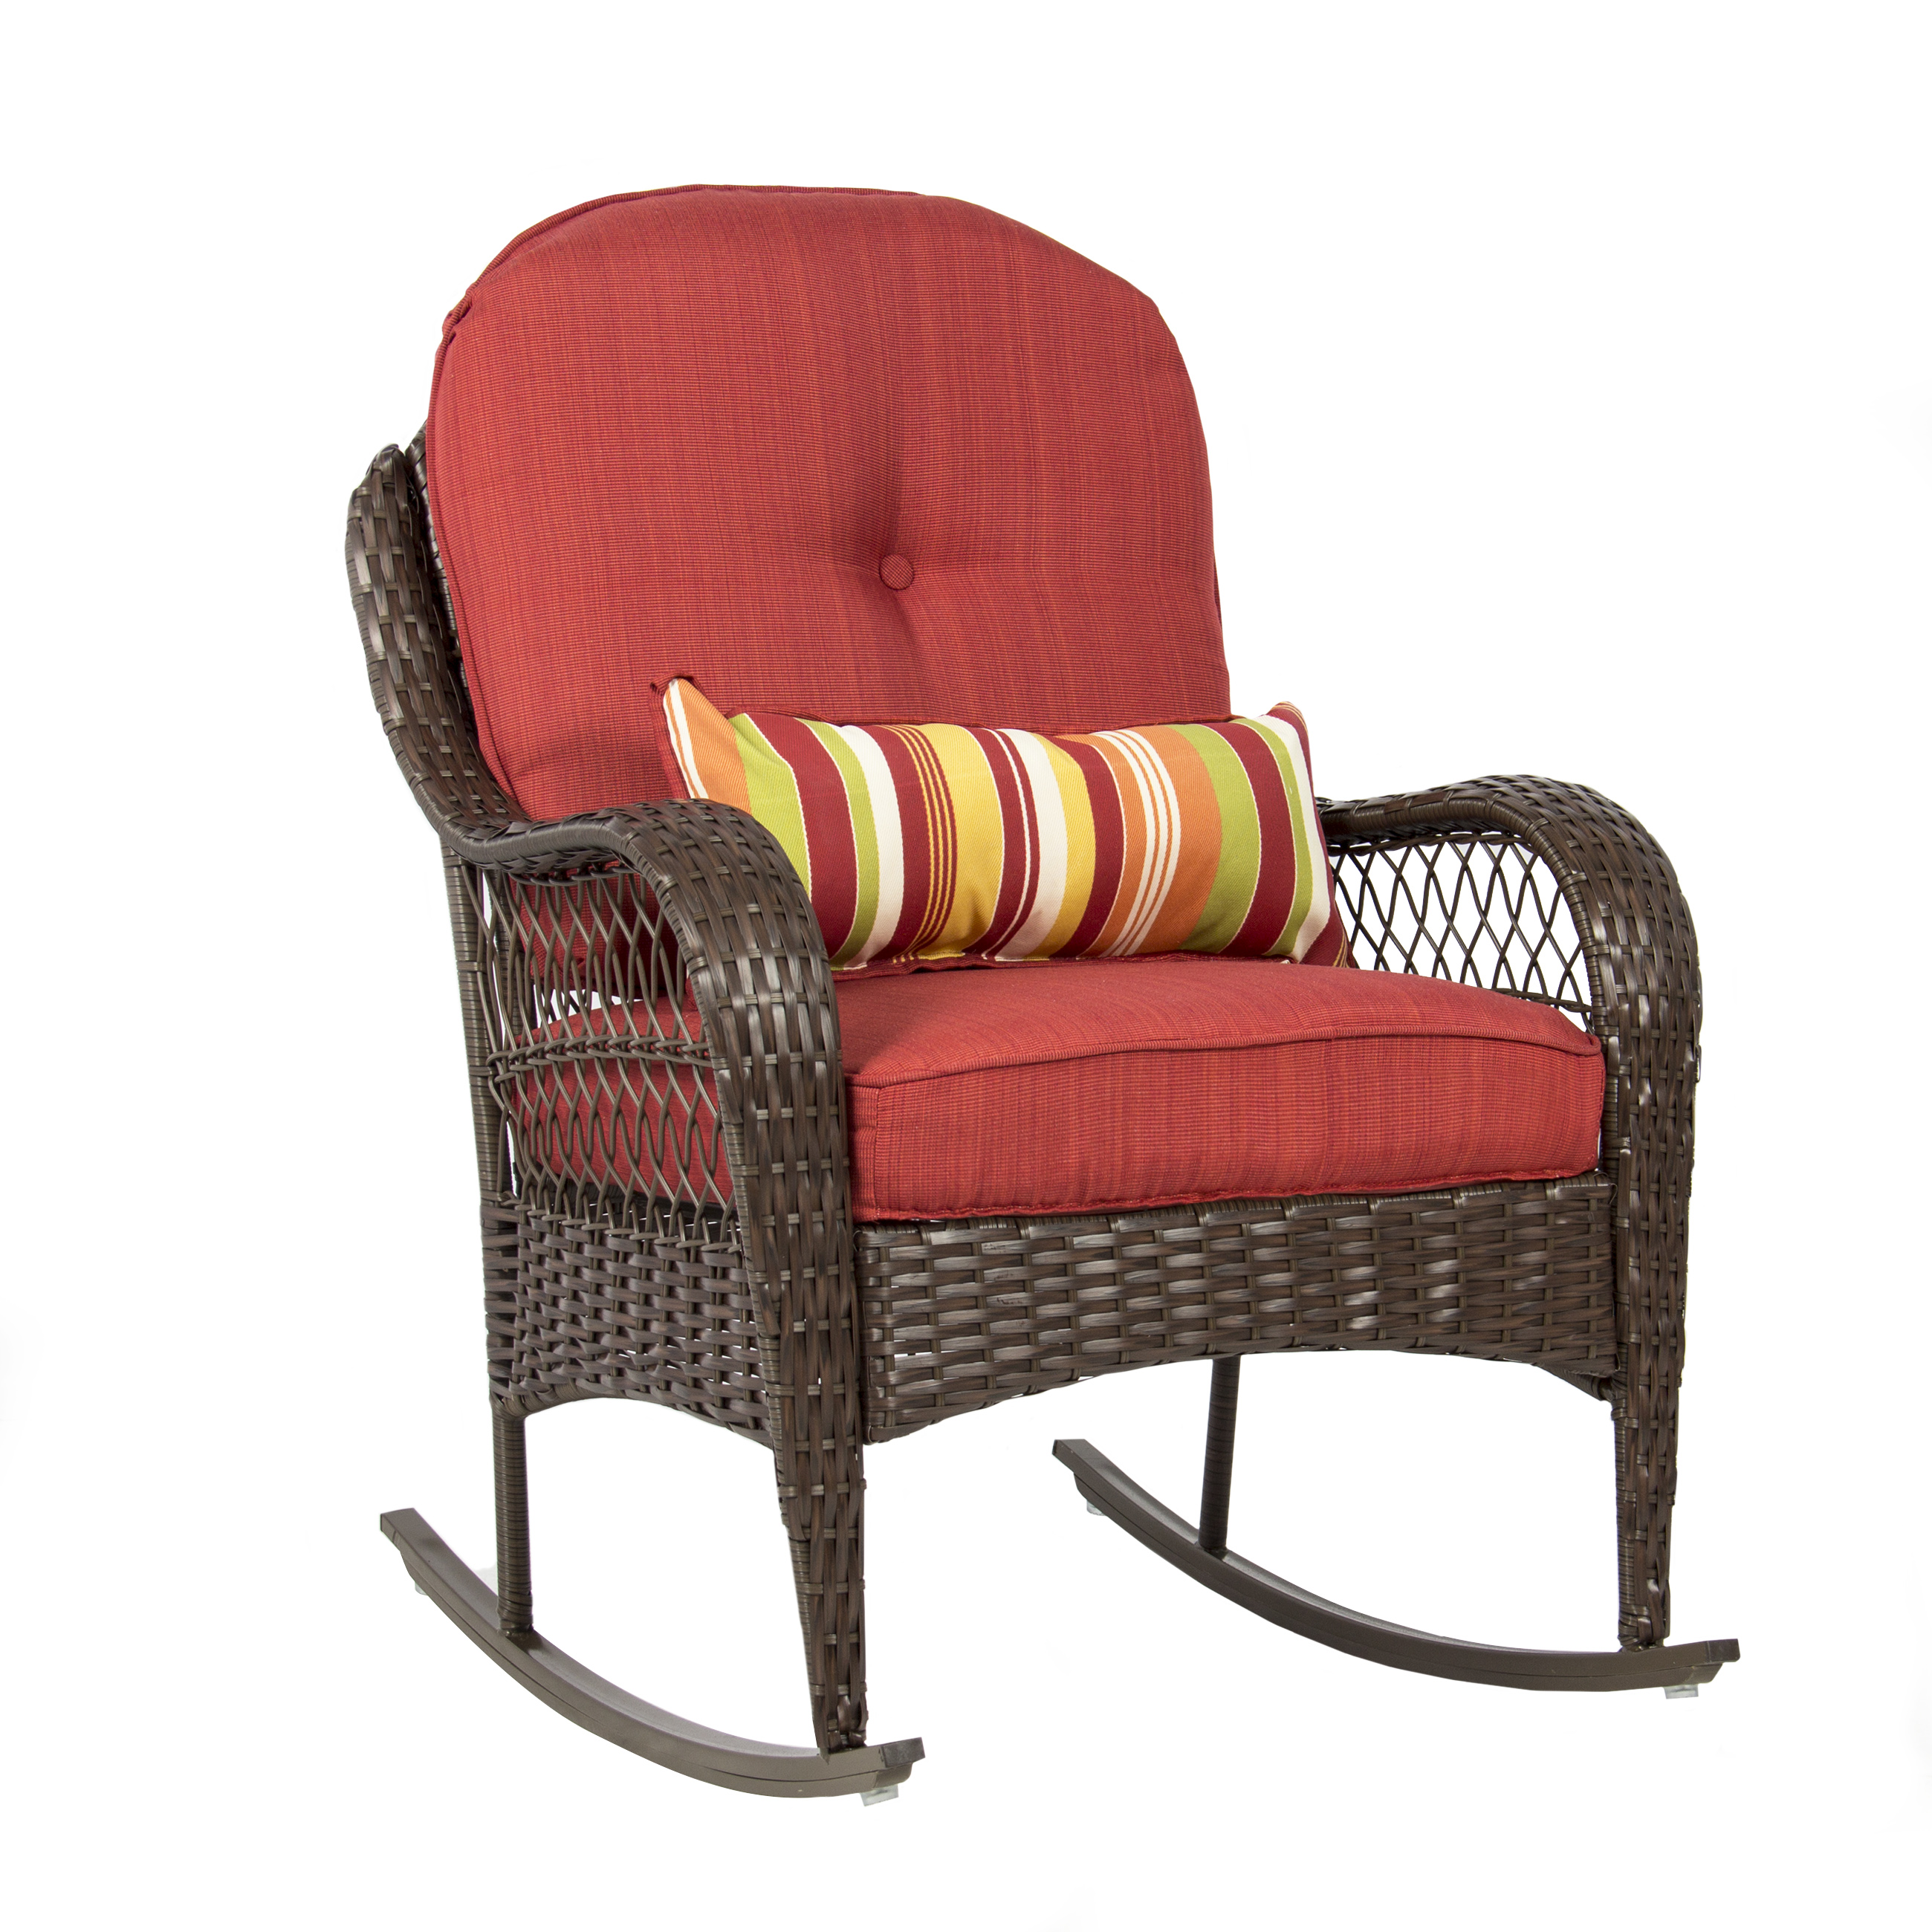 walmart rocking chair glider revolving base price in india best choice products wicker patio porch deck all weather proof w cushions com